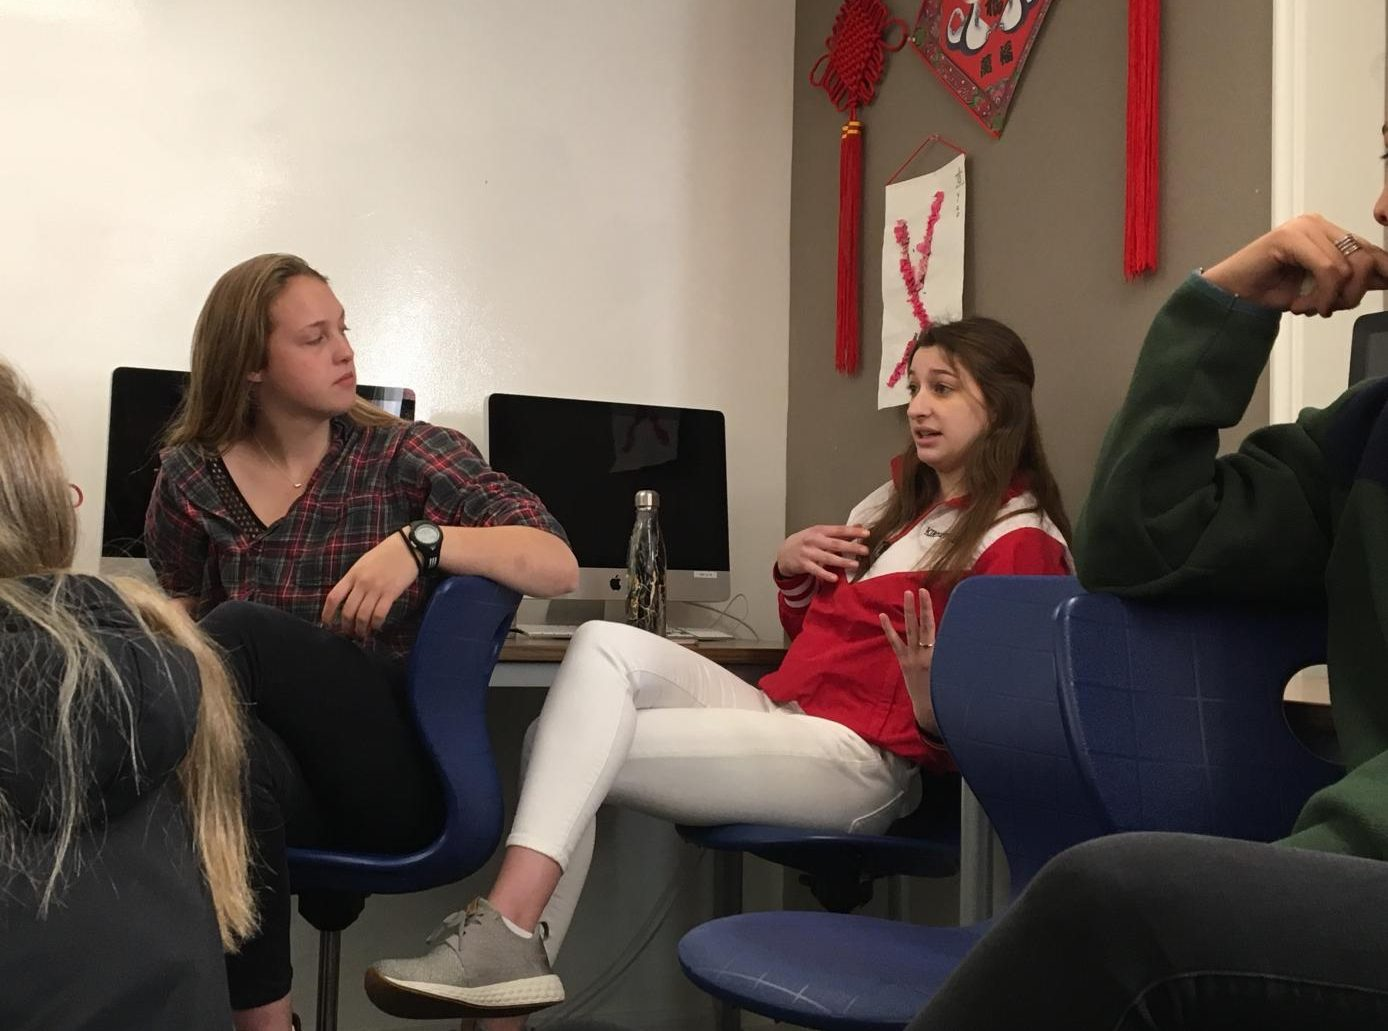 Junior Kiki Apple shares her opinion on the Second Amendment during her Theory of Knowledge class. The class postponed the lesson plan to discuss their perspectives on issues arising from recent school shootings.